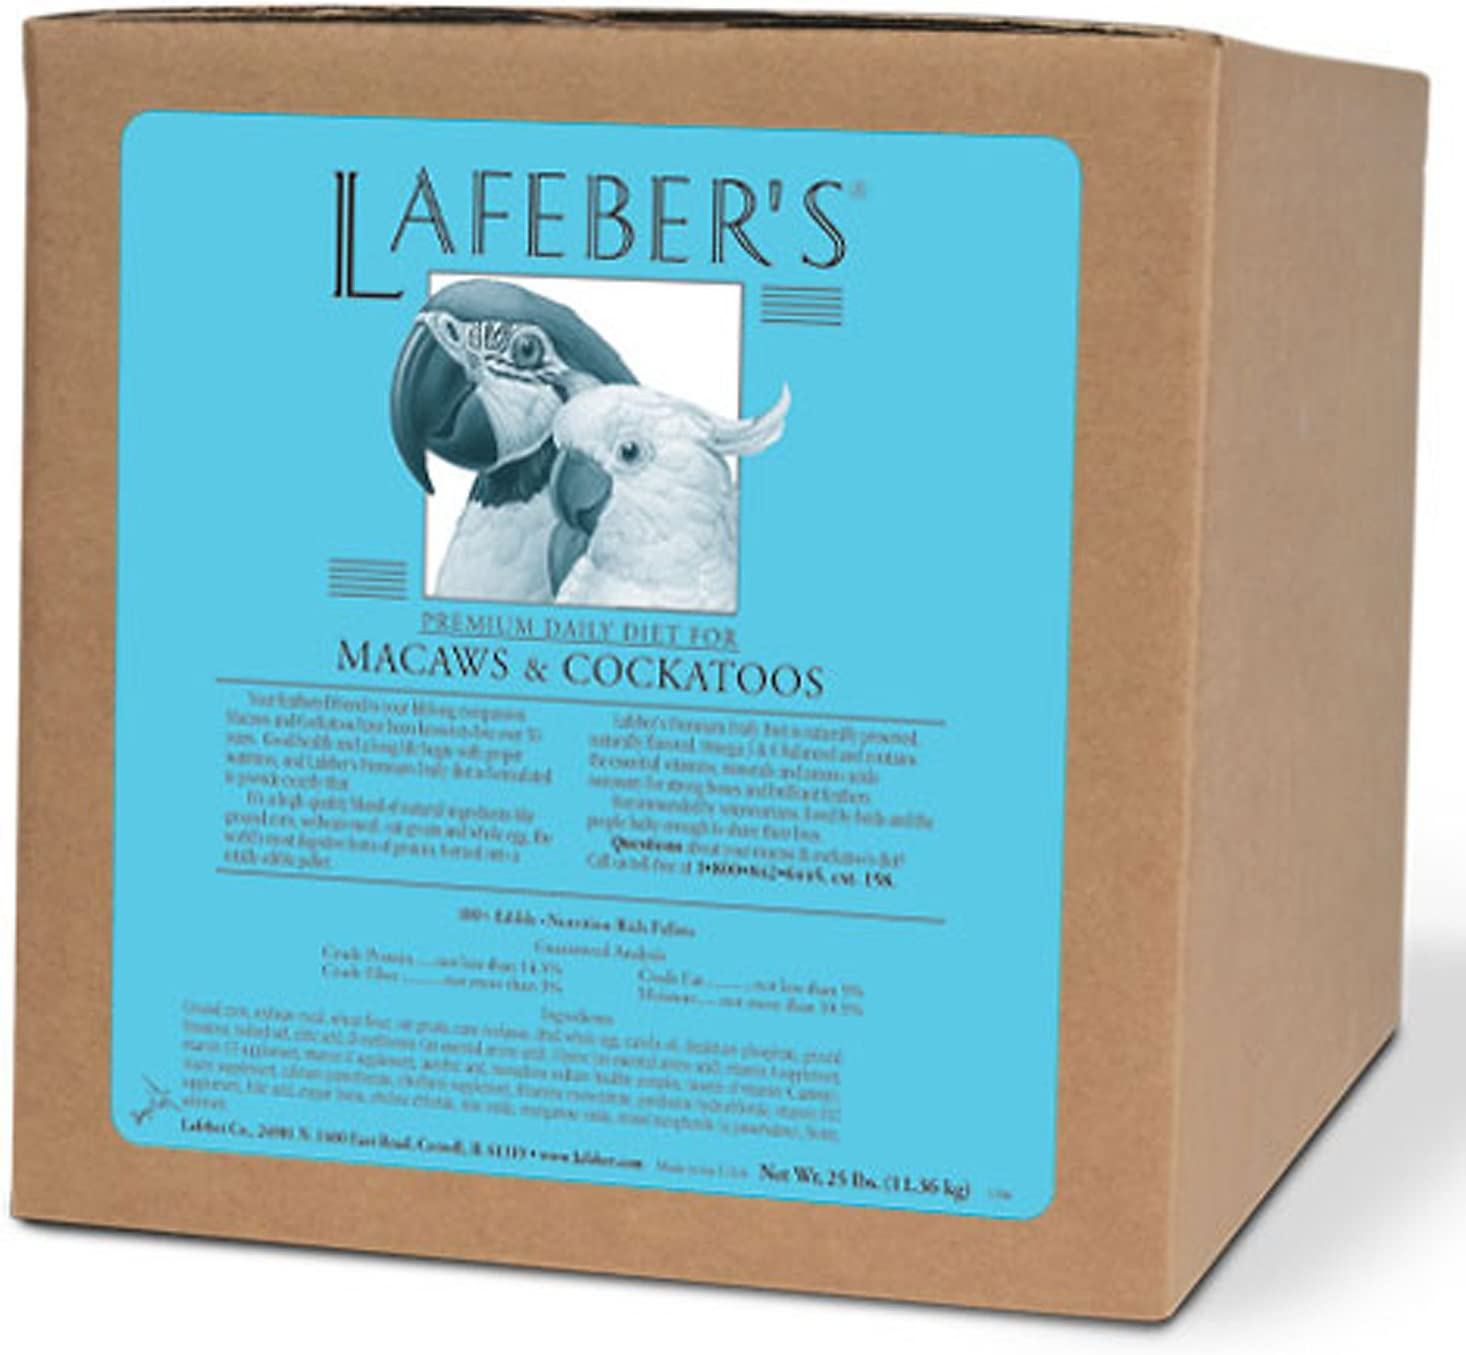 LAFEBER'S Premium Daily Diet Pellets Pet Bird Food, Made with Non-GMO and Human-Grade Ingredients, for Macaws and Cockatoos